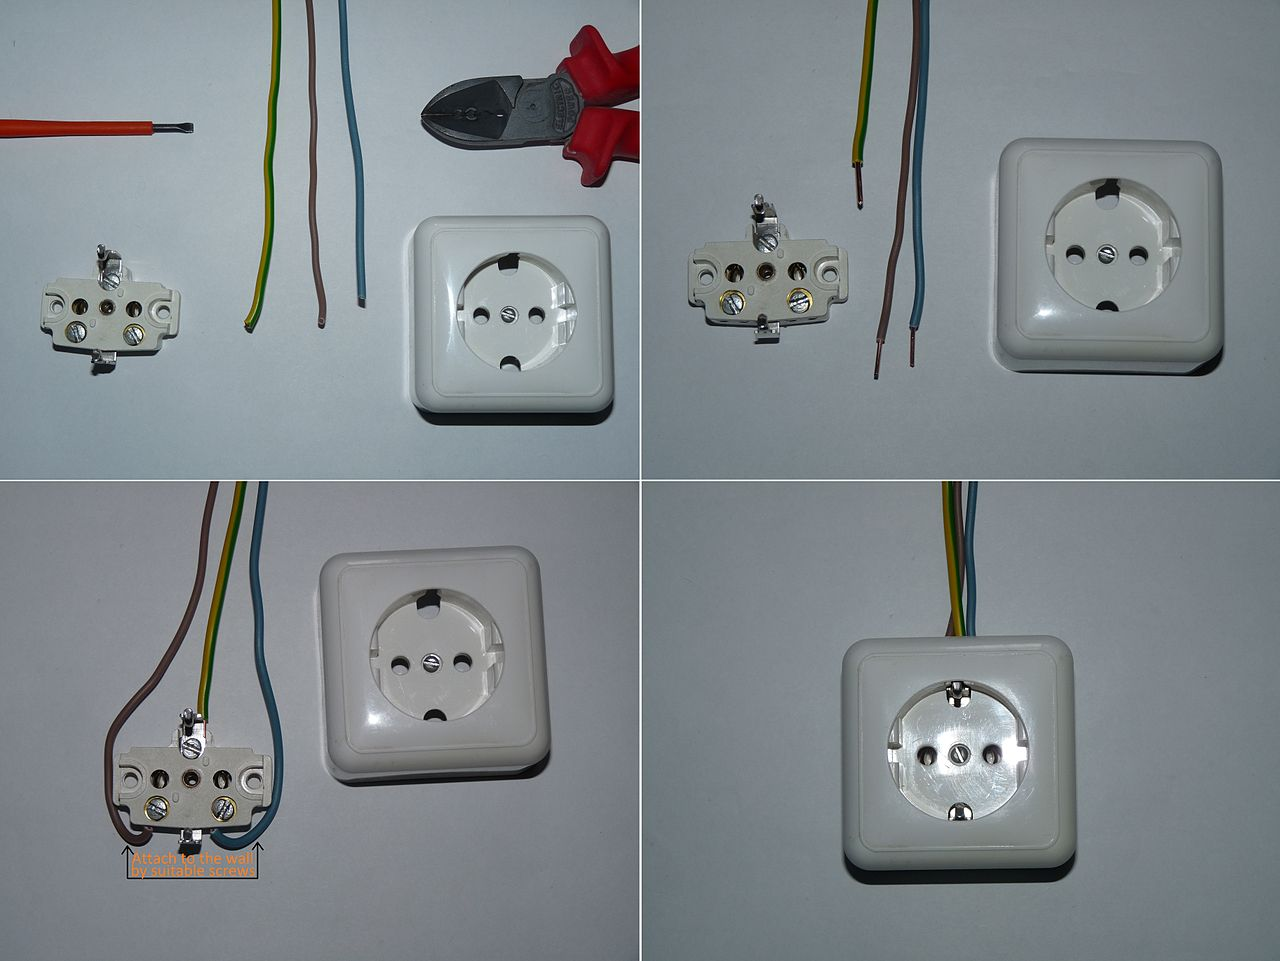 file example of schuko wiring jpg wikimedia commons rh commons wikimedia org Outlet Wiring Diagram 3 Prong Plug Wiring Diagram